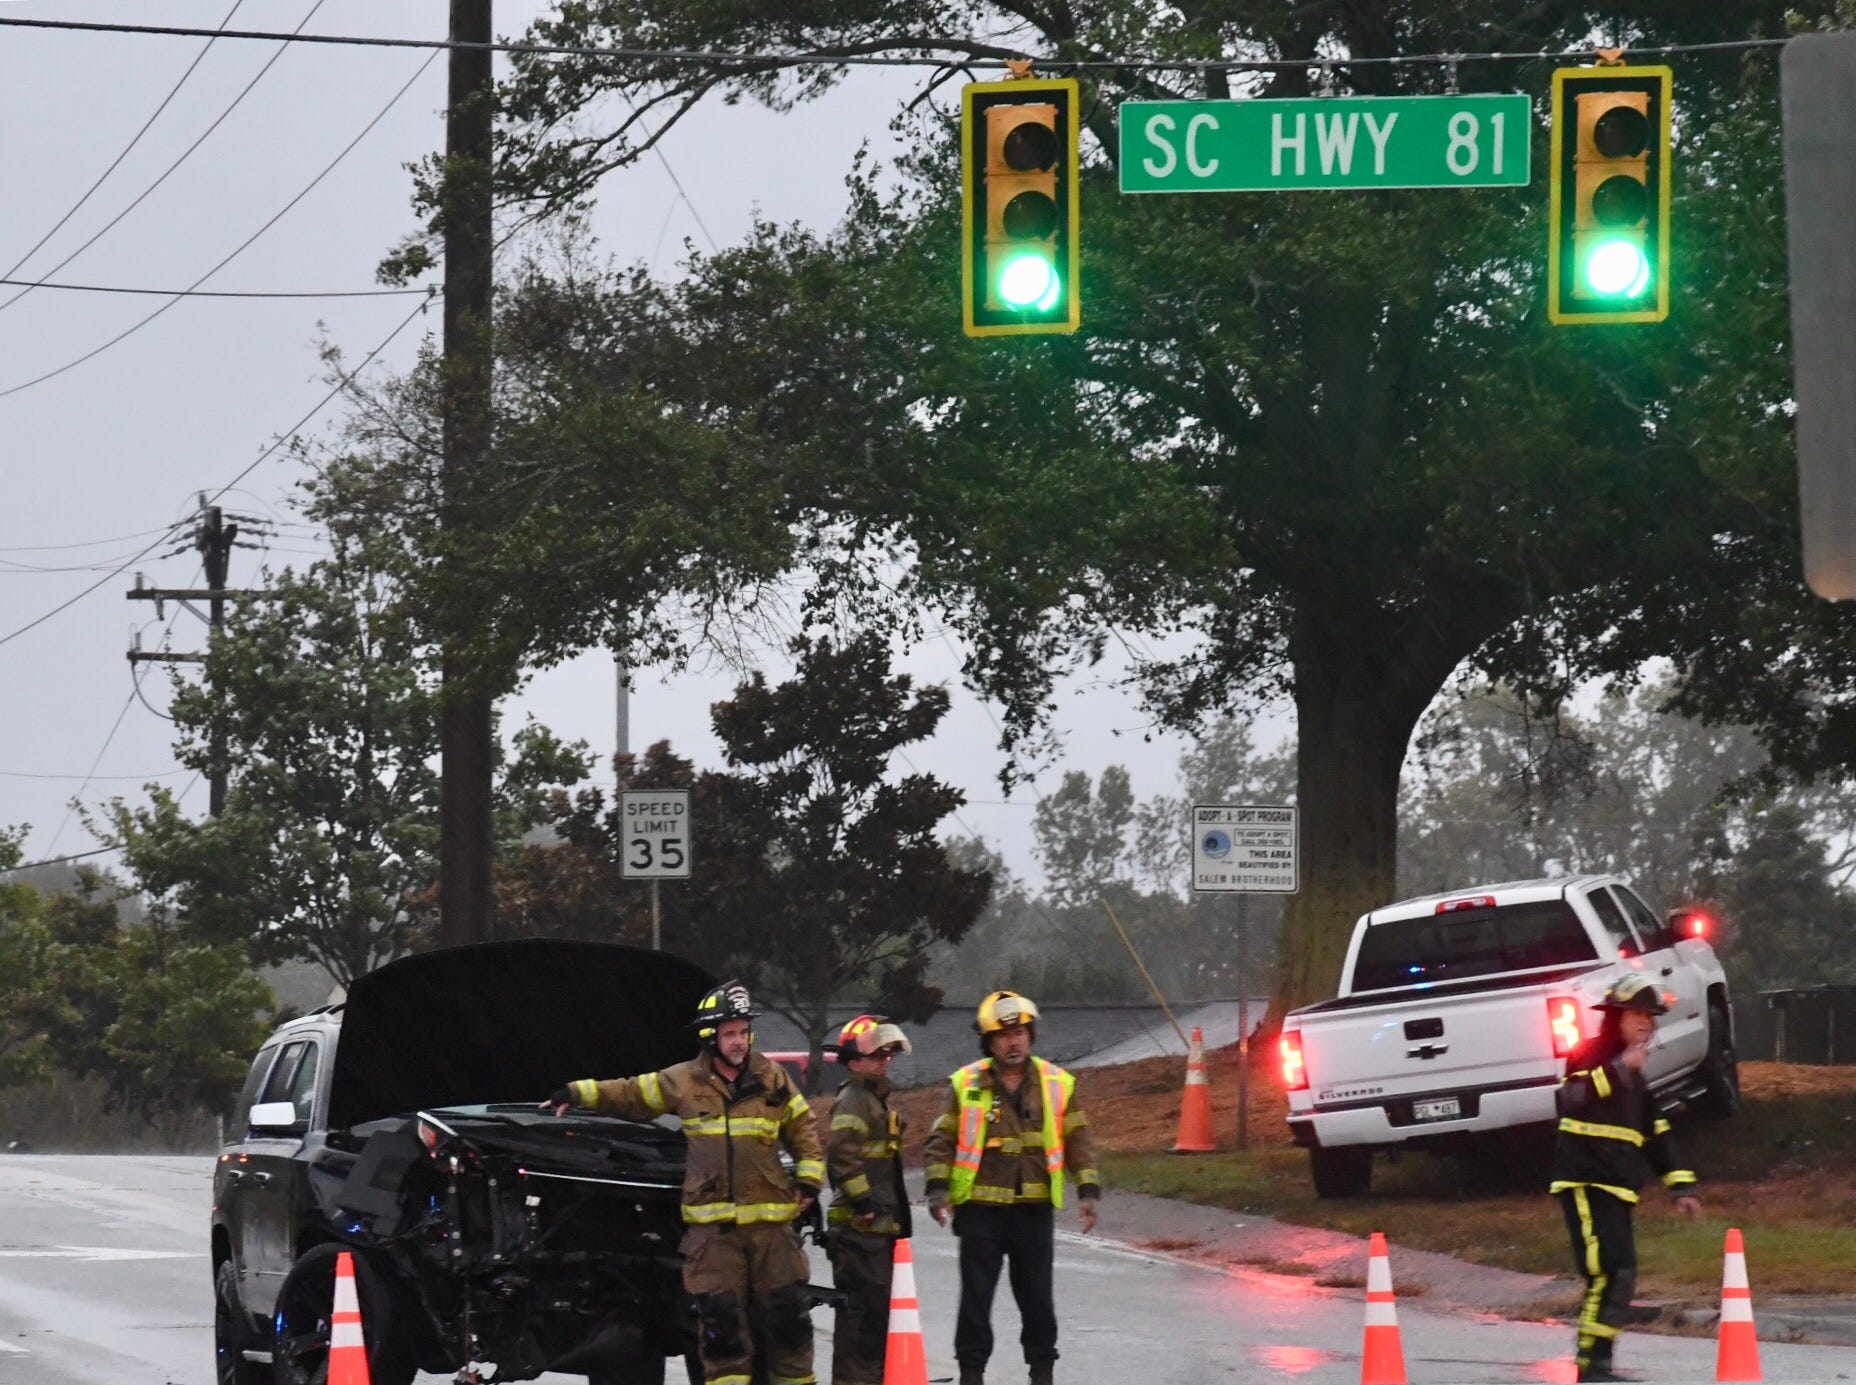 As Tropical Storm moved into the area on Thursday, Oct. 11, 2018, heavy rain made road travel hazardous in Anderson County. Here emergency crews are at the scene of a wreck at South Carolina 81 and Crestview Road.